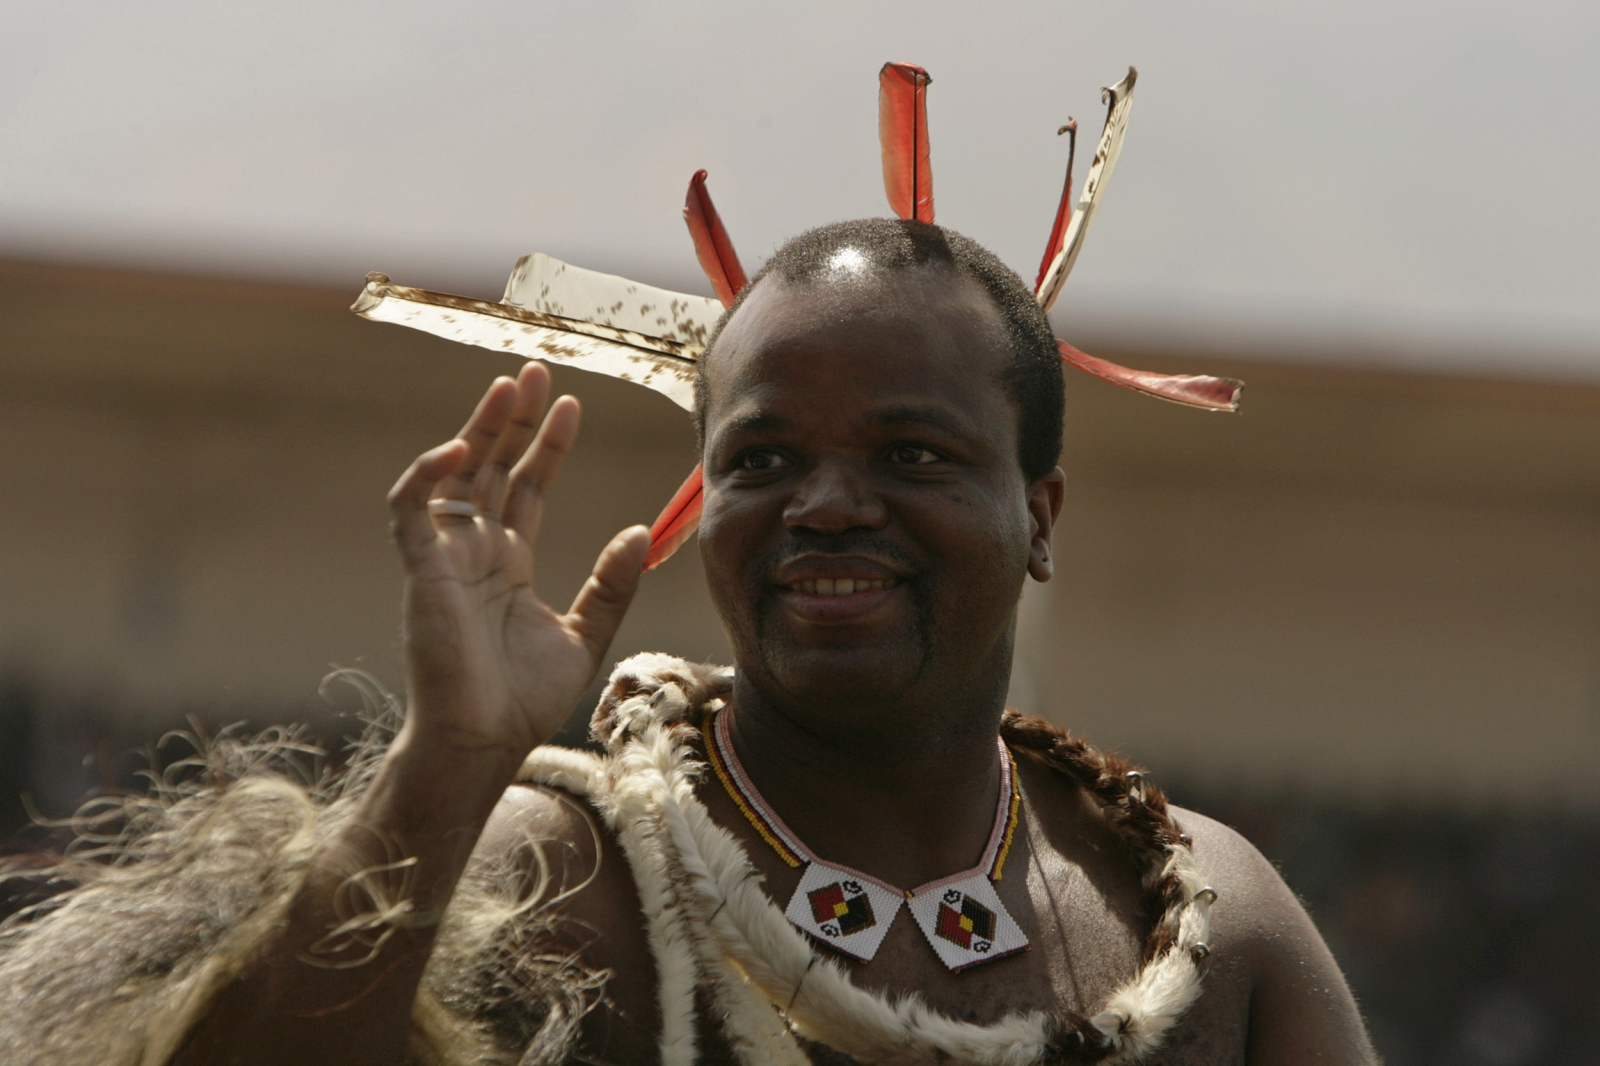 Swaziland King Mswati Iii Takes 19-Year-Old Virgin As His -9426